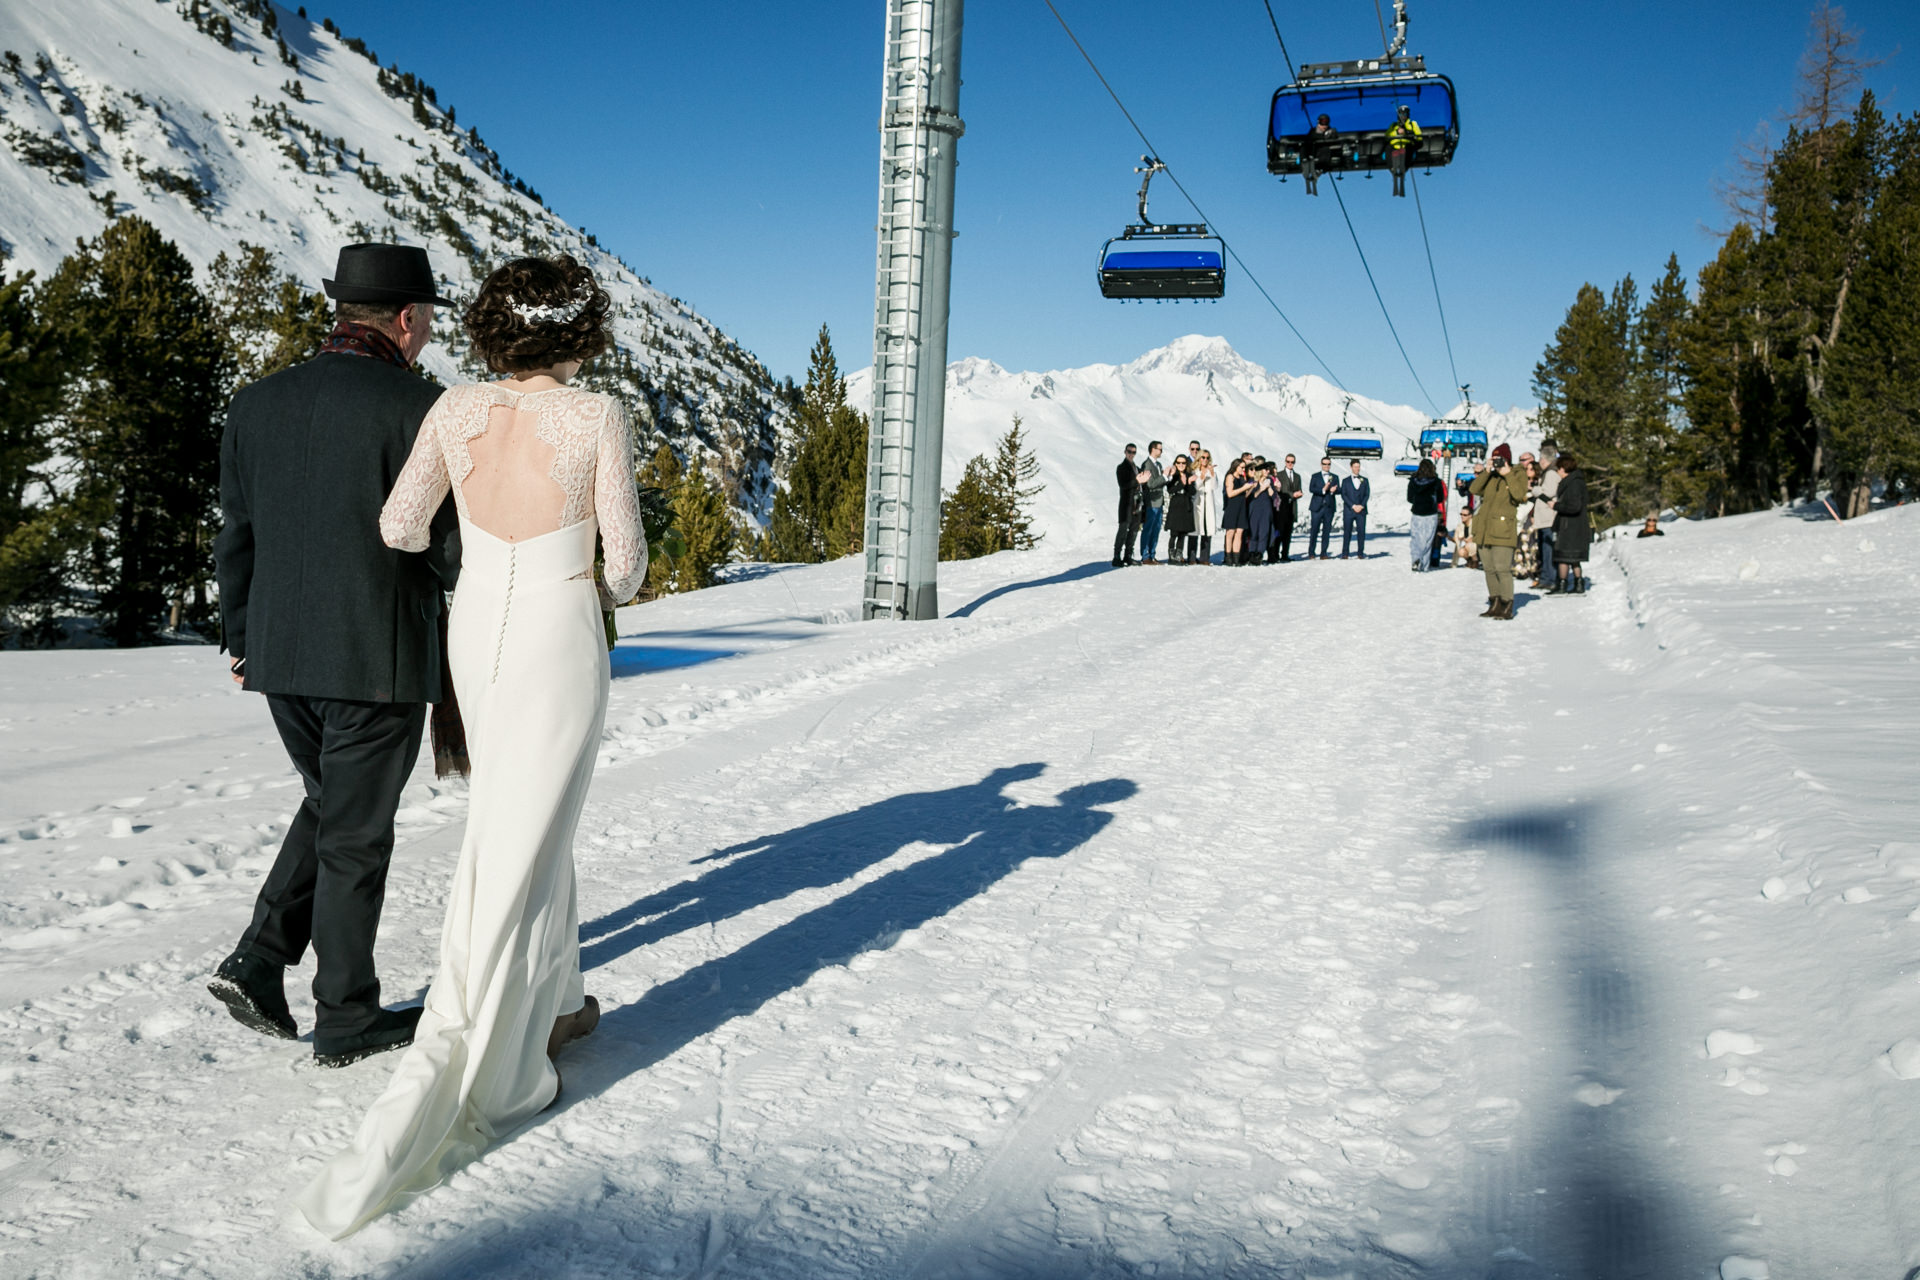 Marriage Photo from the Snow - Getting Married at a France Resort | The bride, in a flowing dress with lace accents